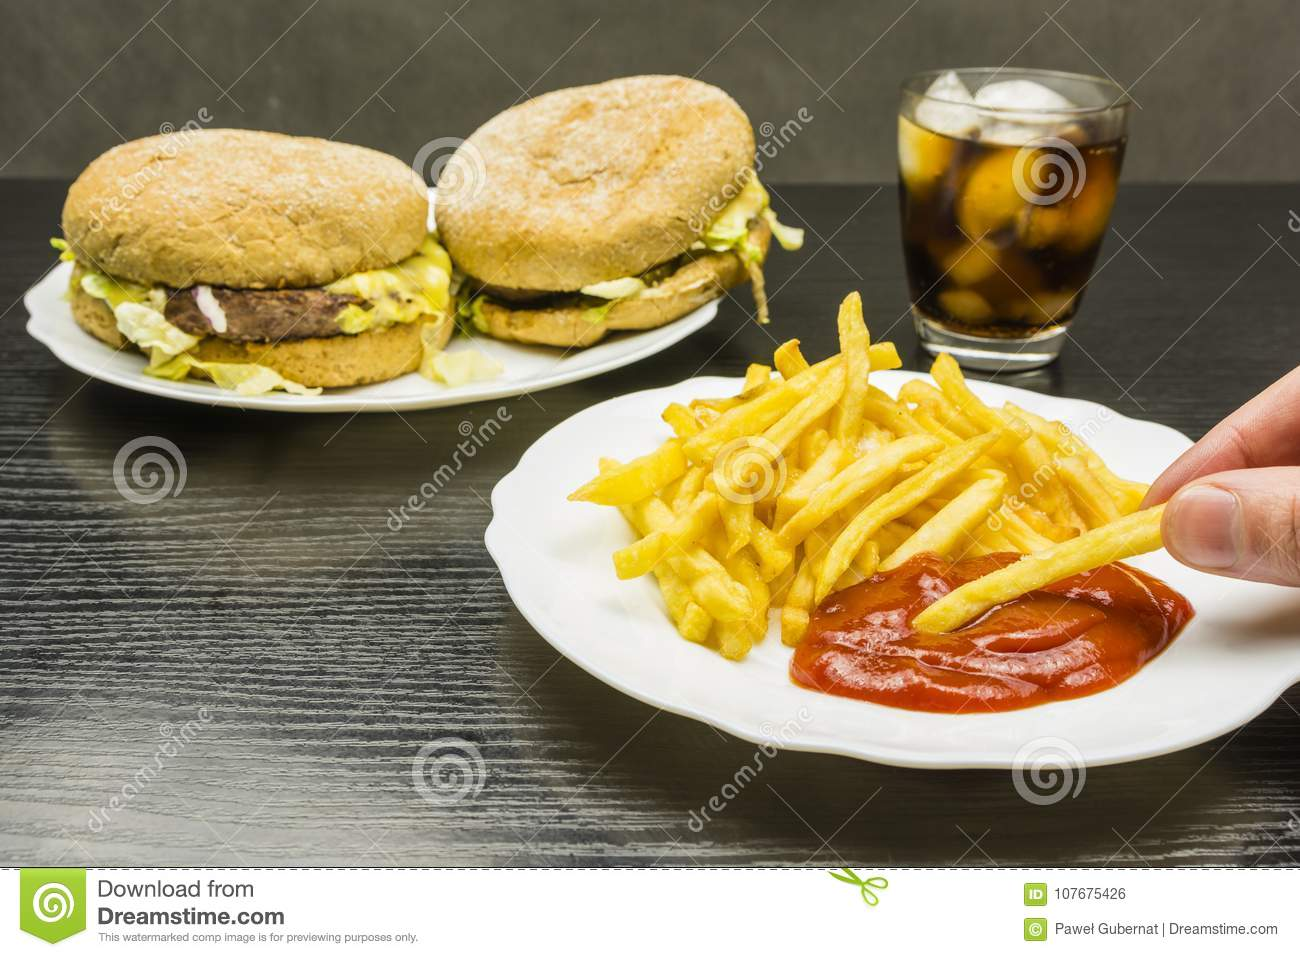 French fries and ketchup on a plate and a burger and cola with i